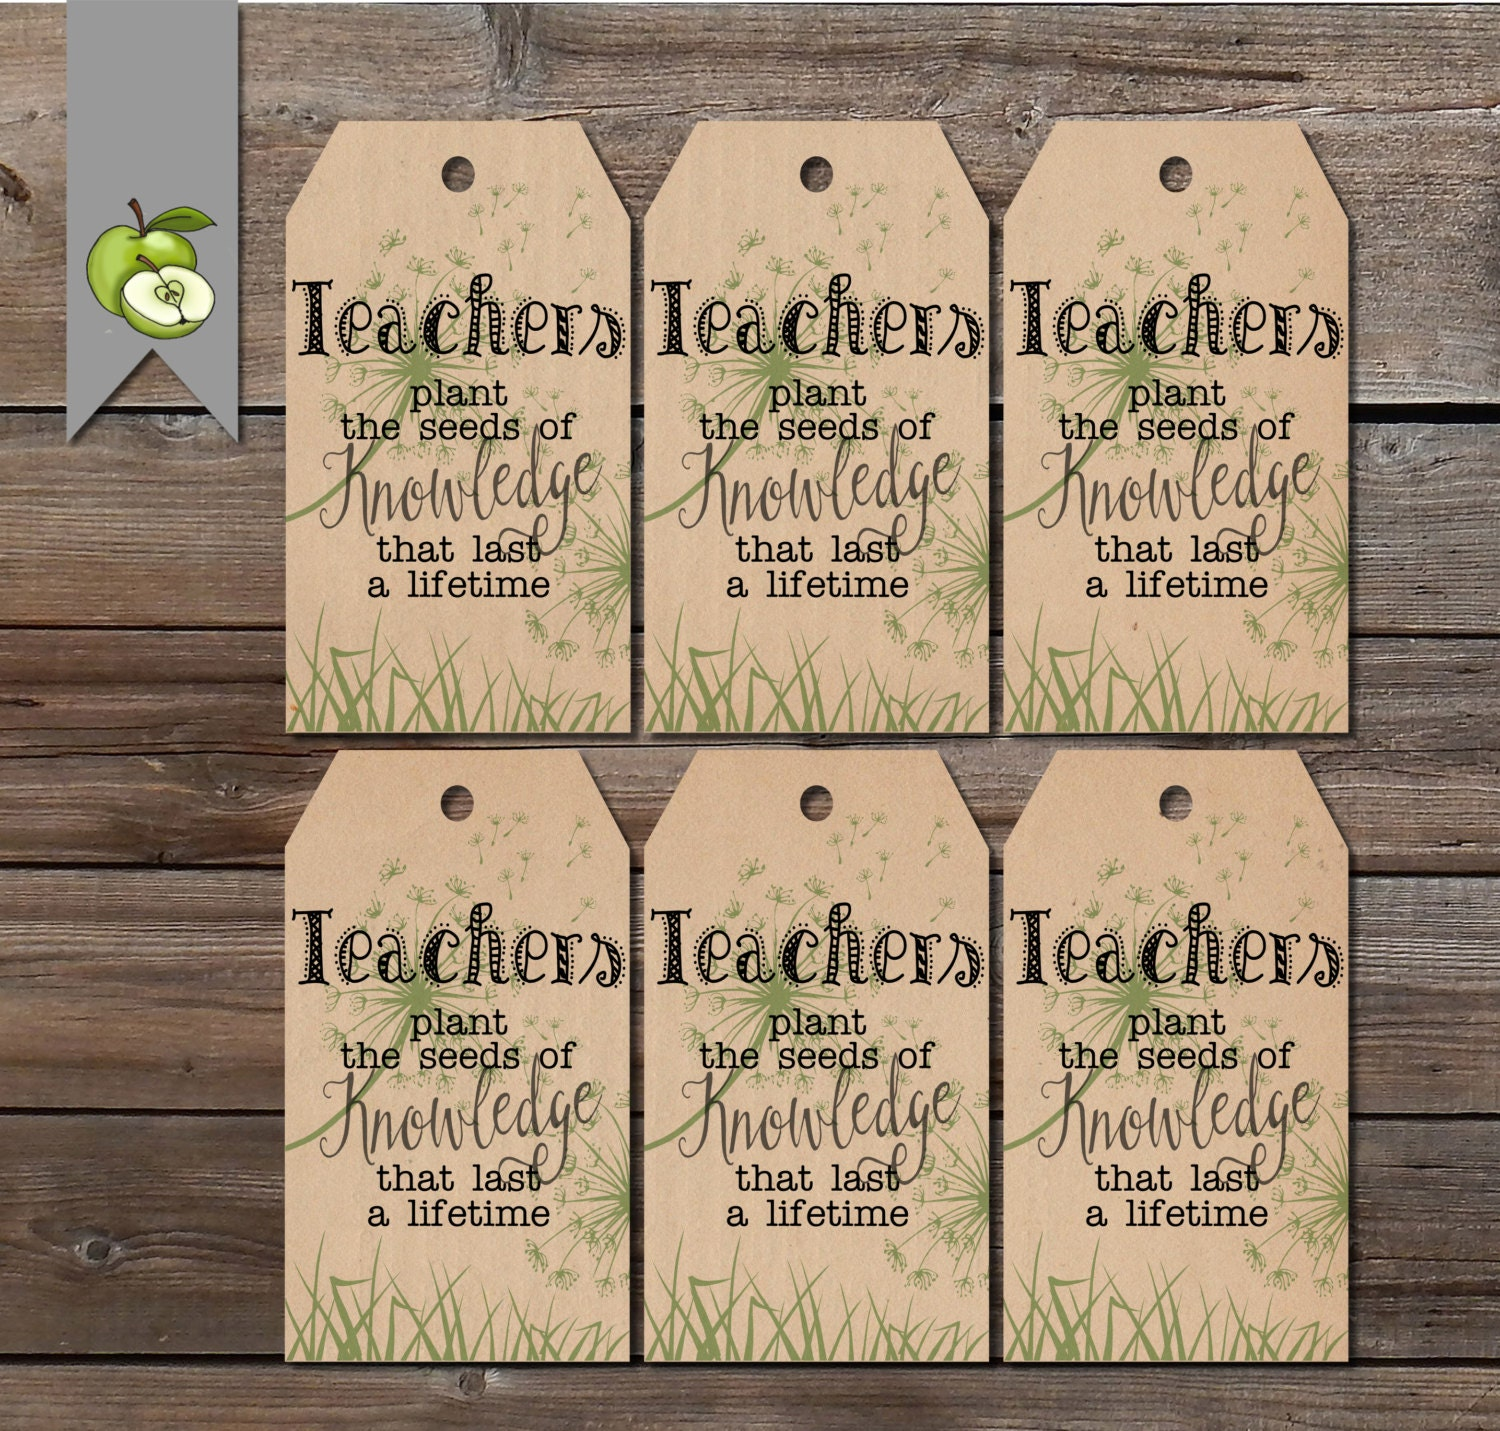 Quotes About Teachers Planting Seeds: Gift Tags Teacher Plant The Seed Plant Tag Teacher Gift